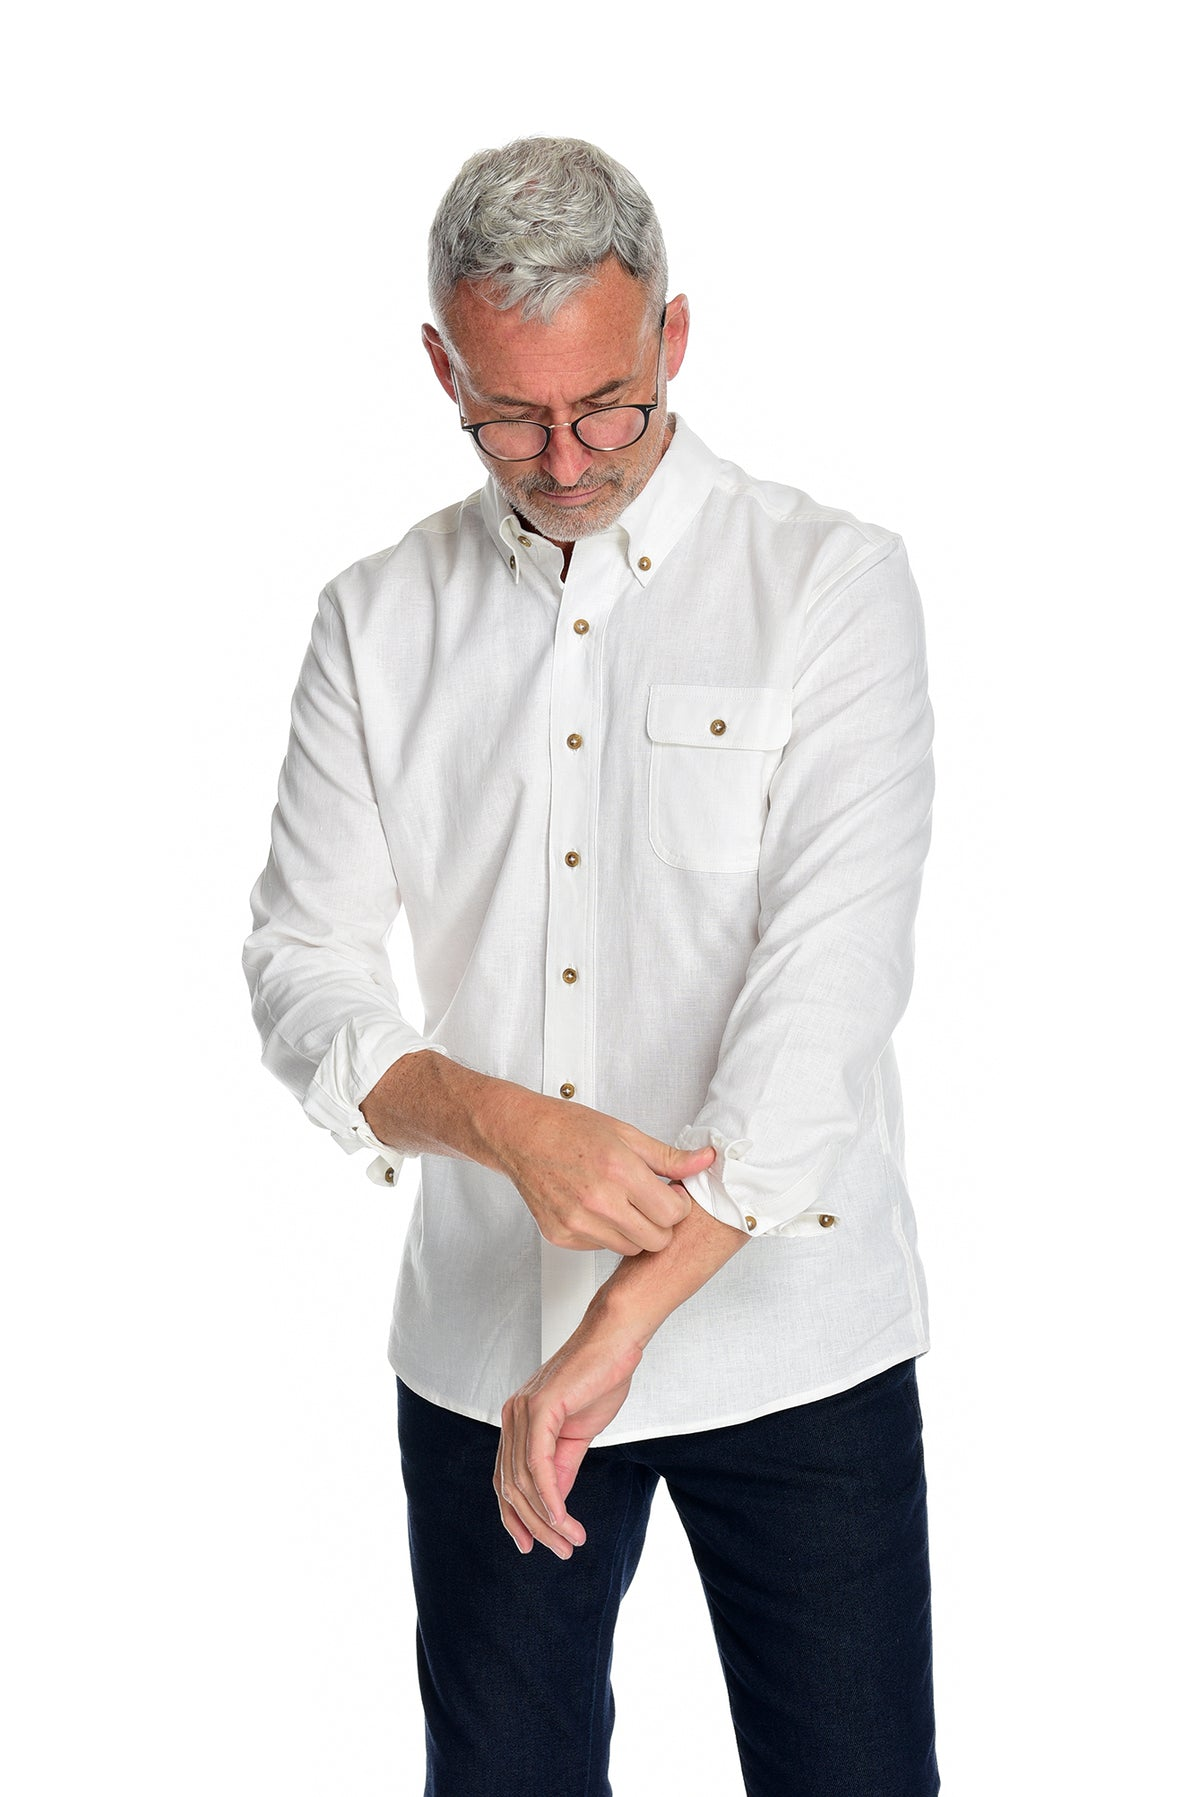 Men's Long Sleeve Button Down Shirt the Bastille Shirt Rolled Up Cuffs by Fisher + Baker White Button Down Collar